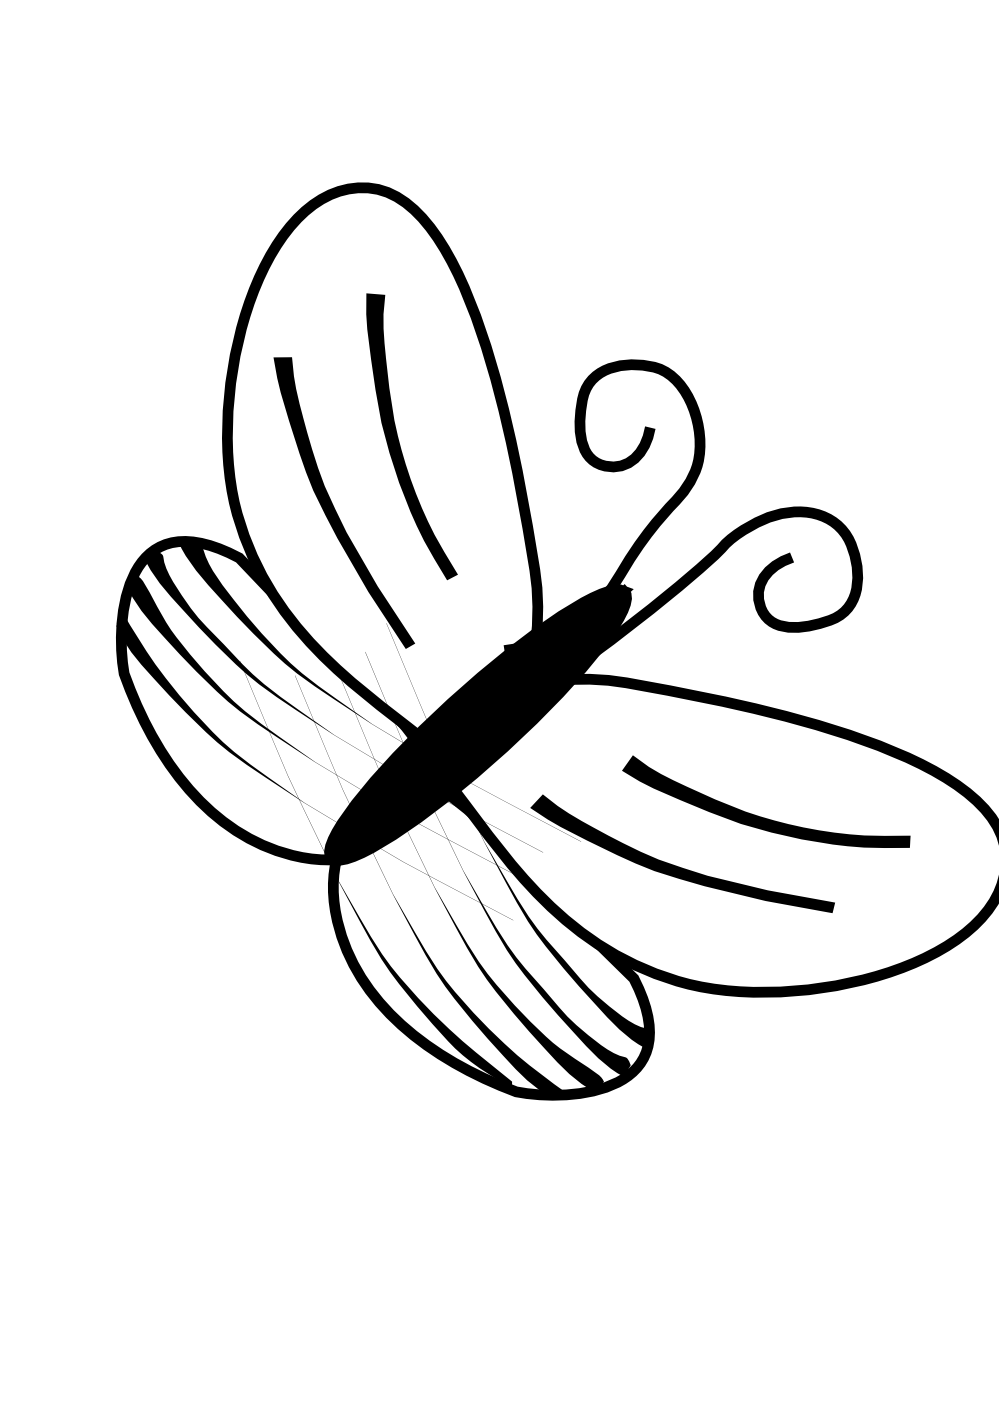 Simple encode clipart to. Butterfly clip art black and white picture freeuse stock